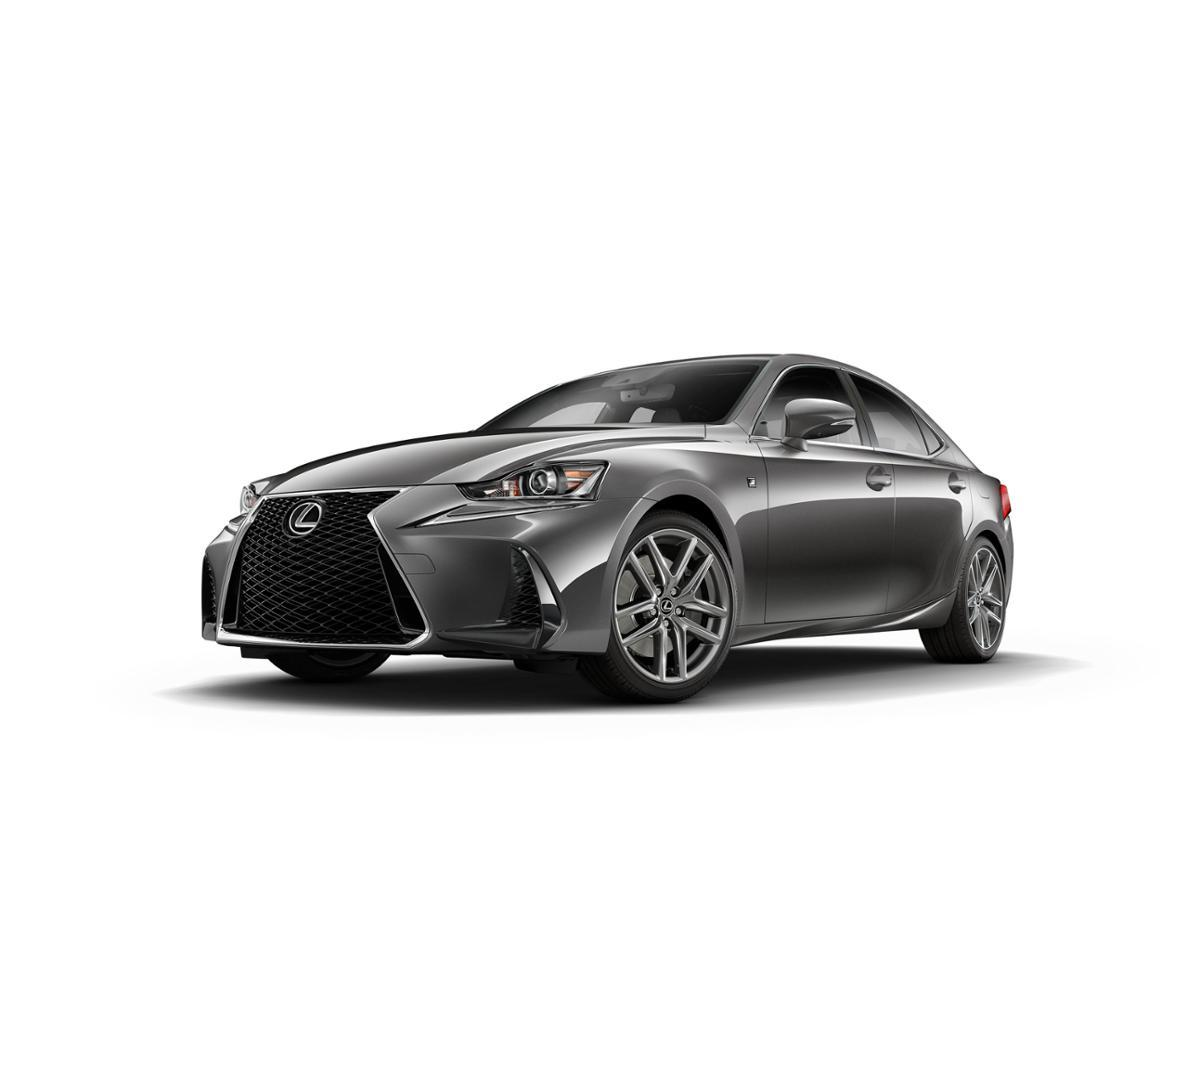 2018 Lexus IS 300 Vehicle Photo in Las Vegas, NV 89146